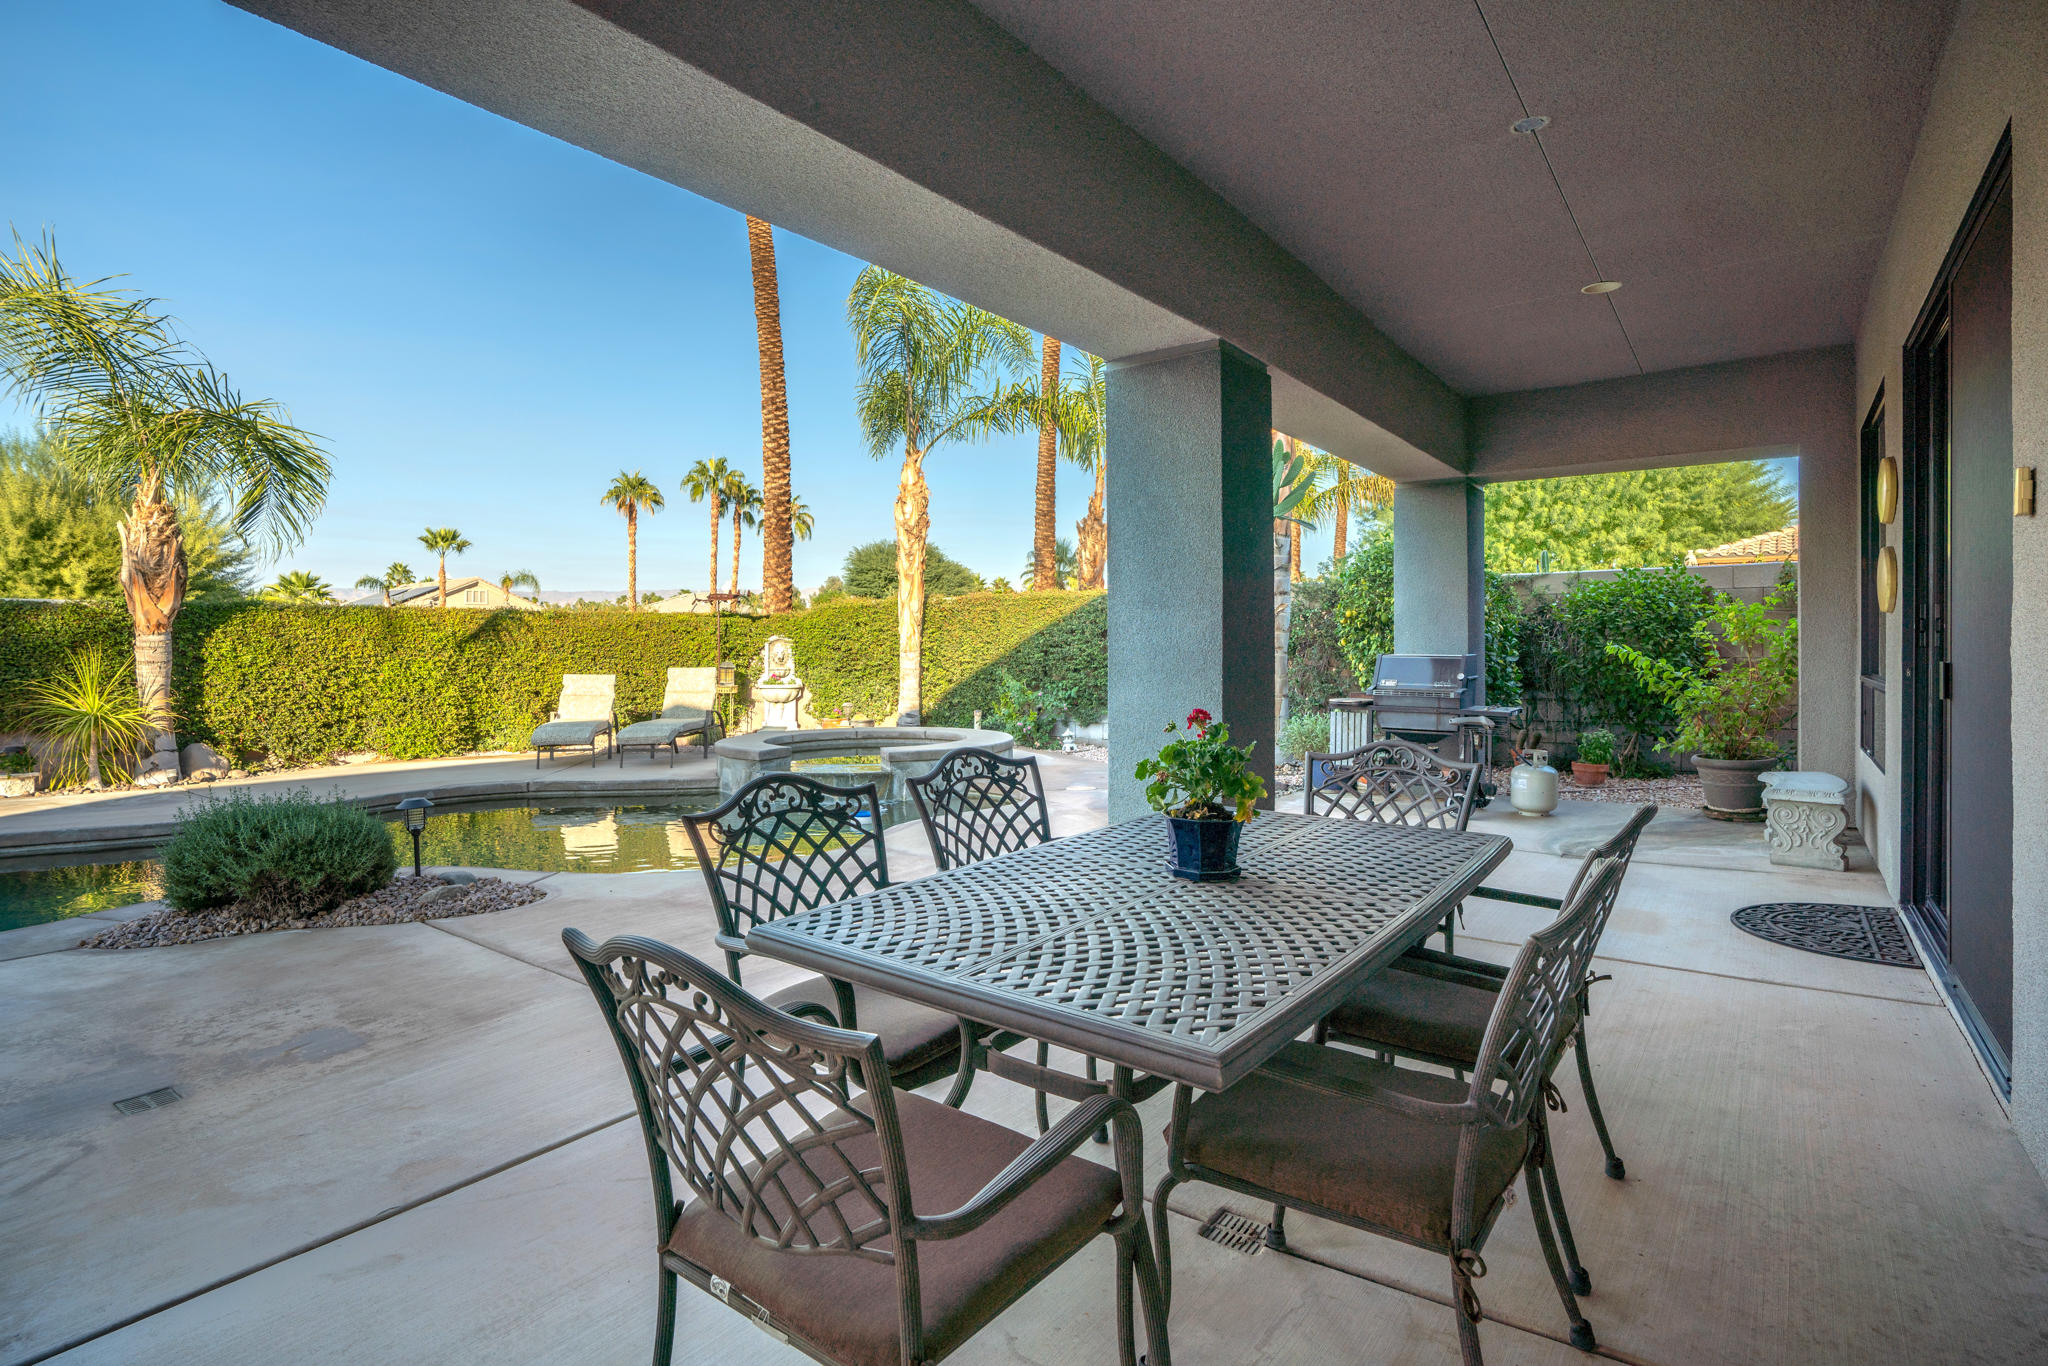 69848 Matisse Road, Cathedral City, California 92234, 4 Bedrooms Bedrooms, ,4 BathroomsBathrooms,Residential,For Sale,69848 Matisse Road,219037371